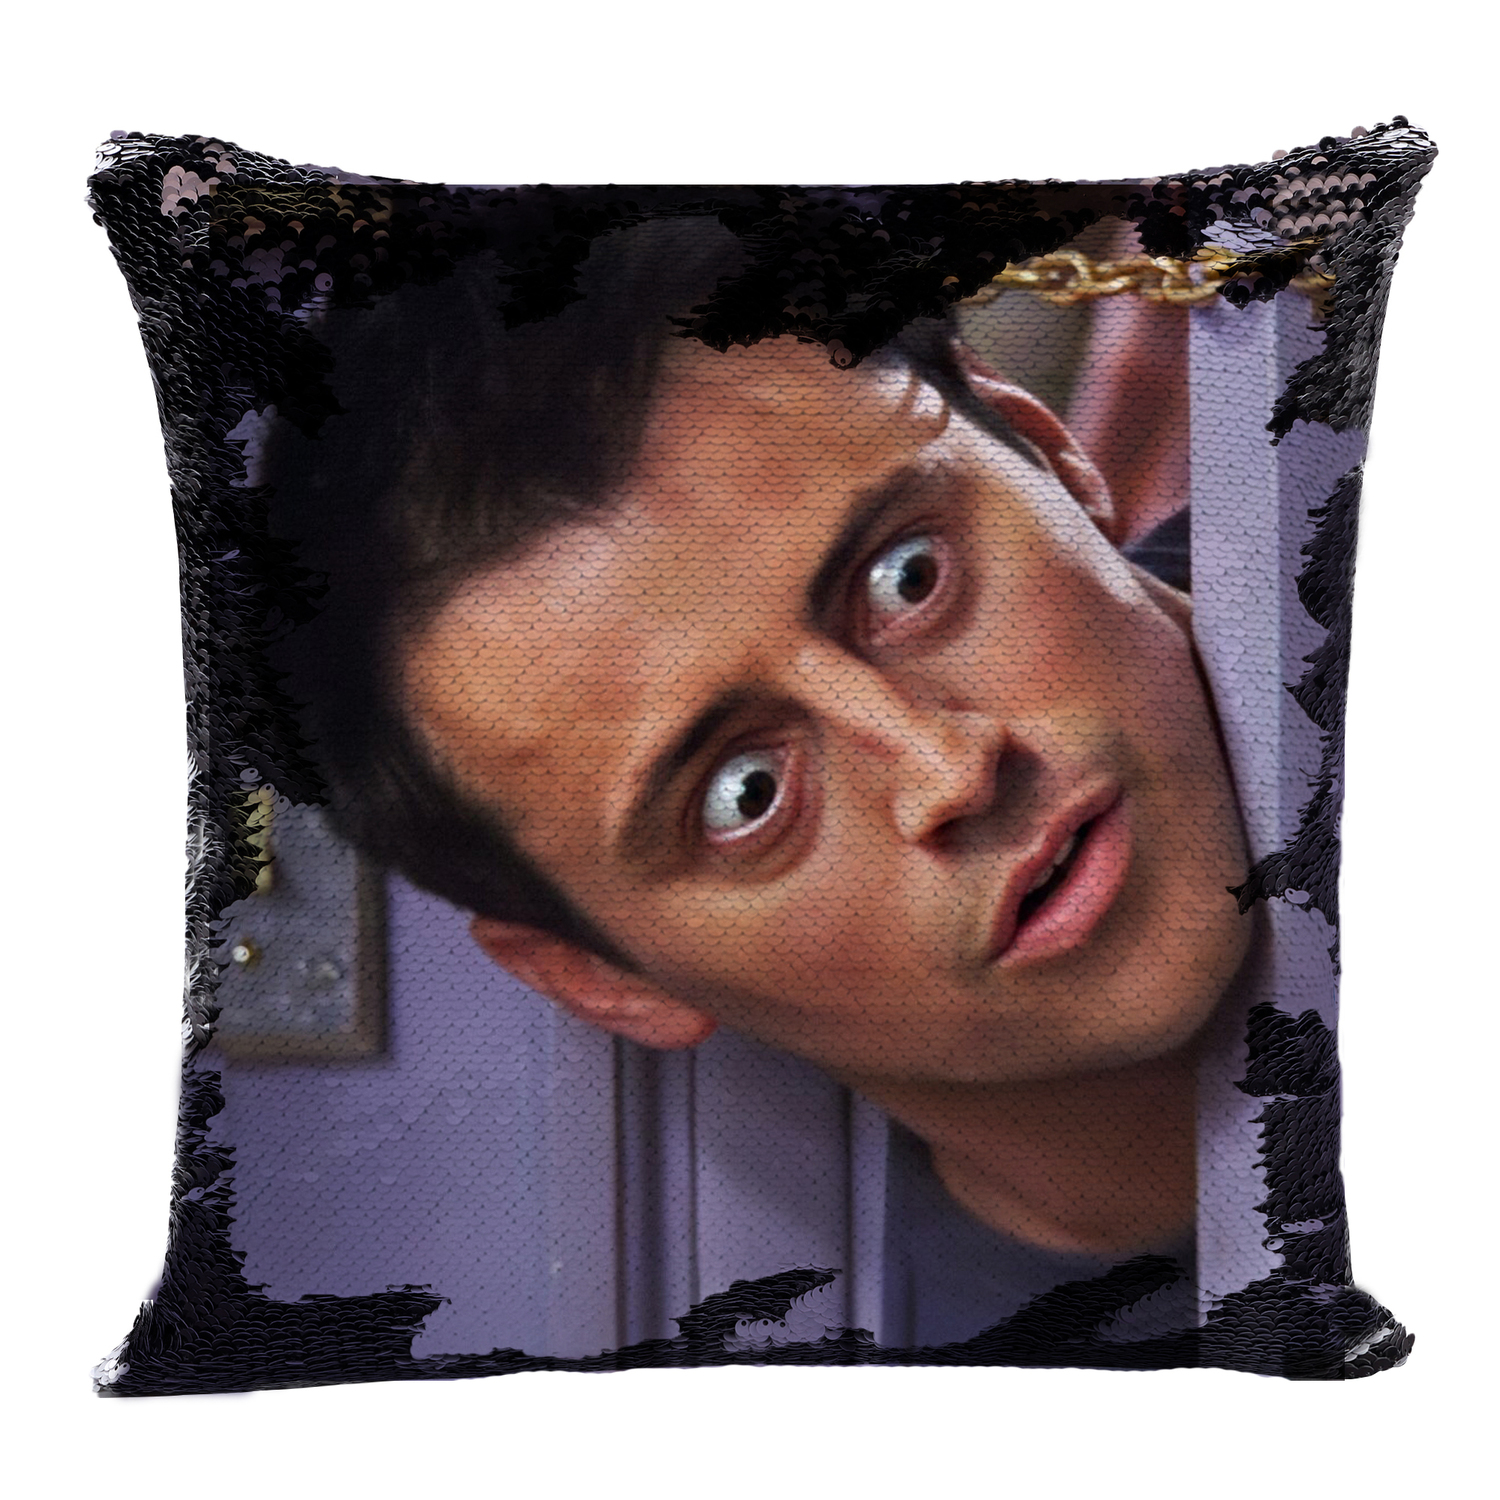 Joey Tribbiani Sequin Pillow Sequin Pillowcase Two Color Pillow Gift For Her Gift For Him Magic Pillow Friends TV Show image